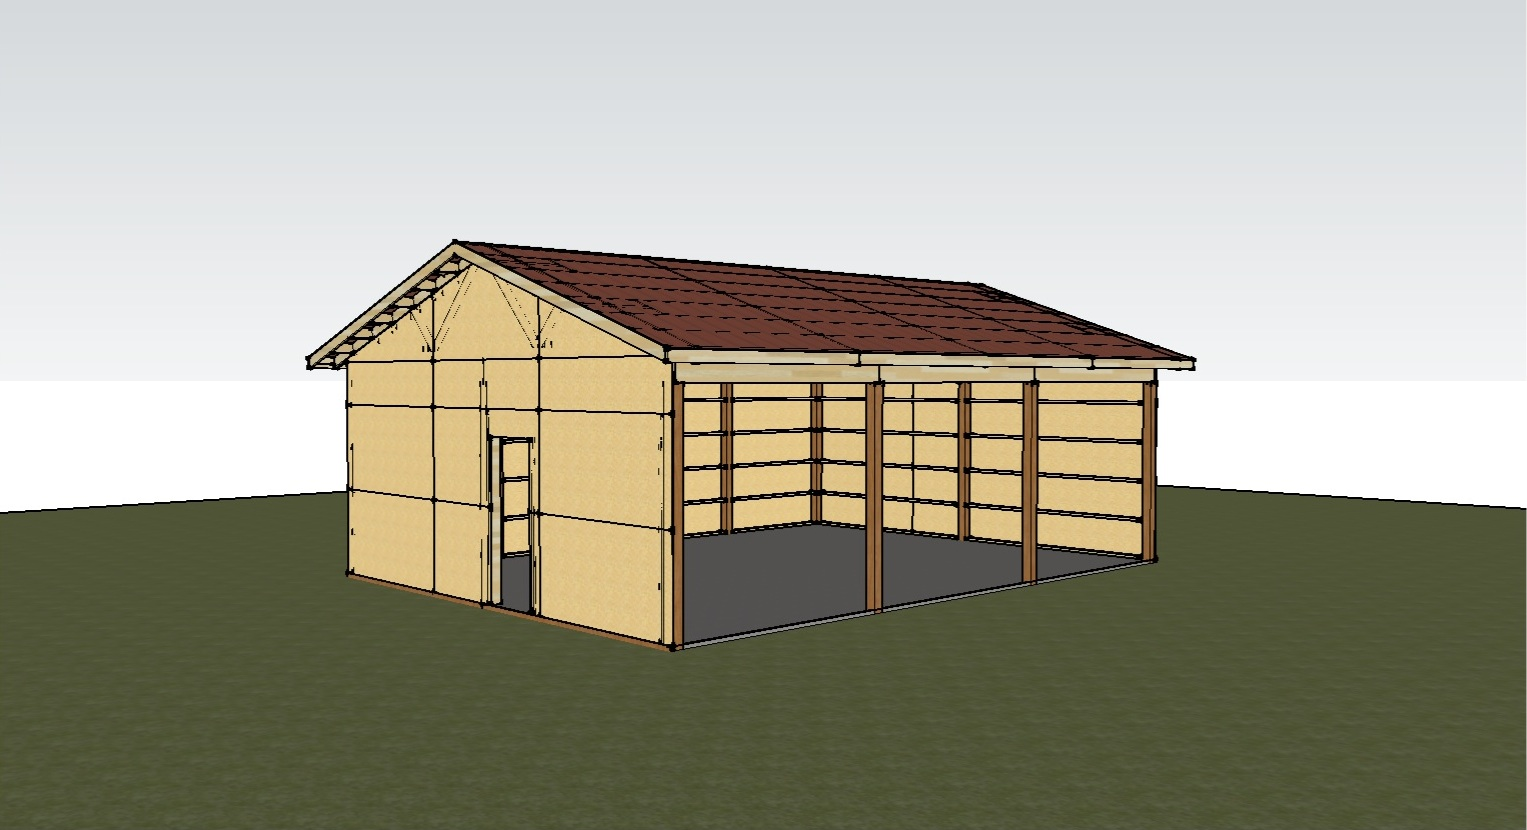 Pole barn plan joy studio design gallery best design for Pole barn drawings